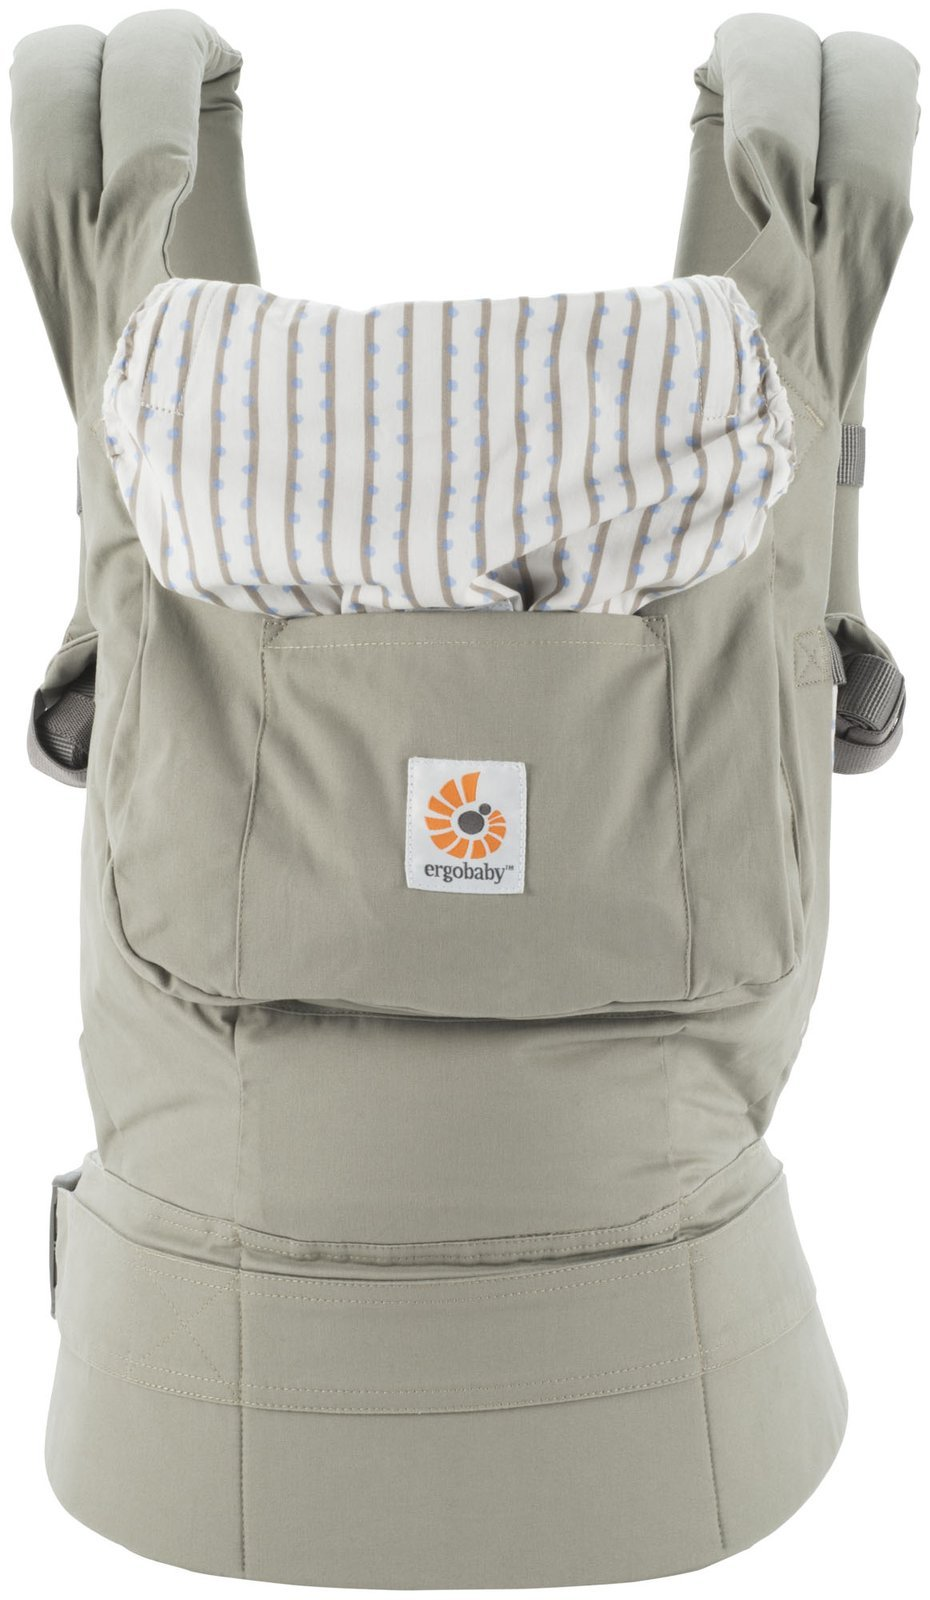 Ergobaby Original Award Winning Ergonomic Multi-Position Baby Carrier with X-Large Storage Pocket, Dew Drop